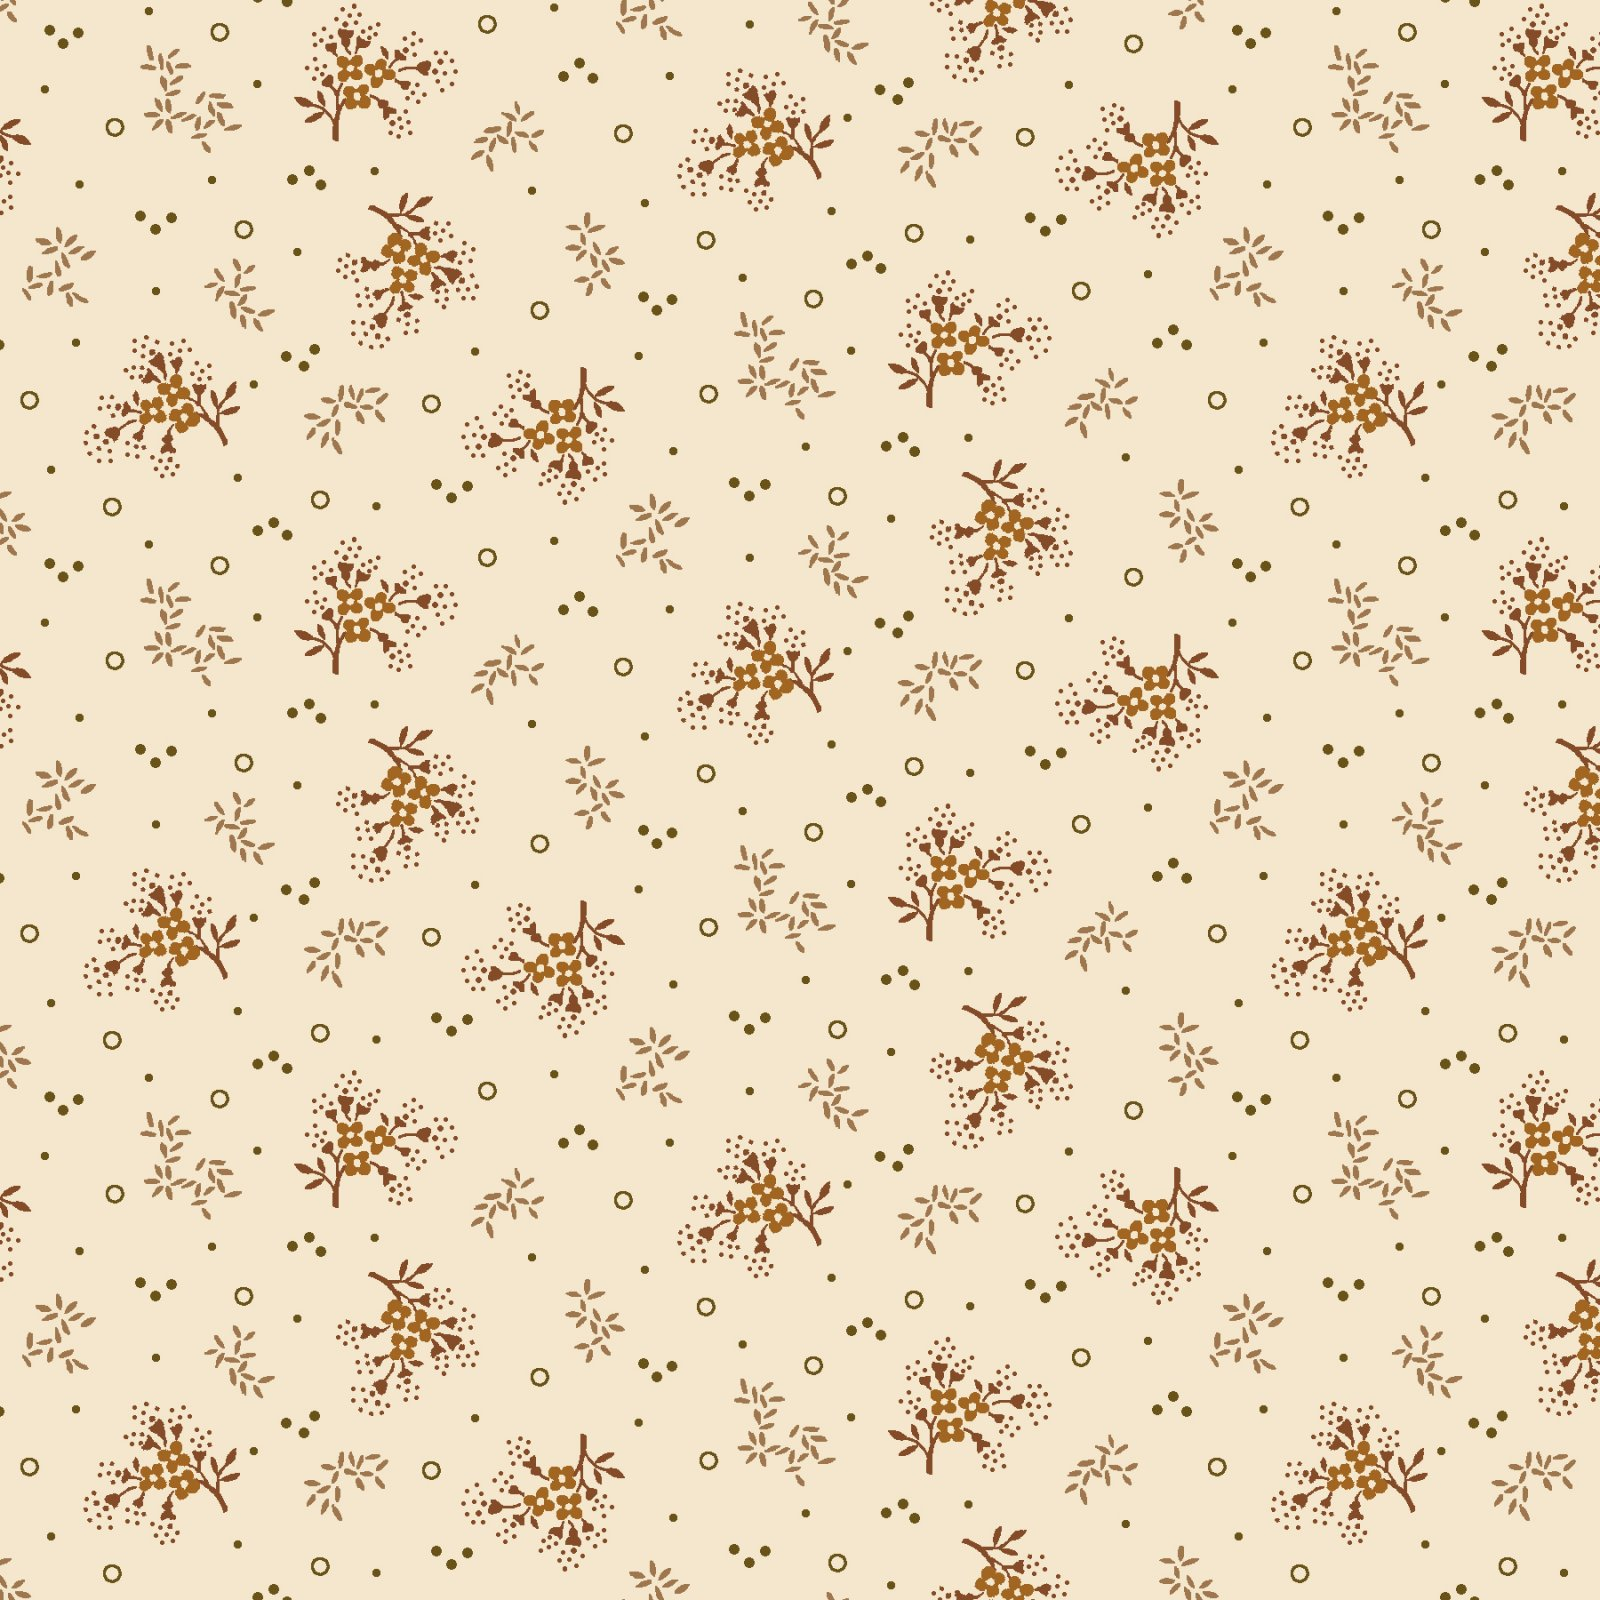 Buttermilk Autumn - 2274-33 * 1/2 yard